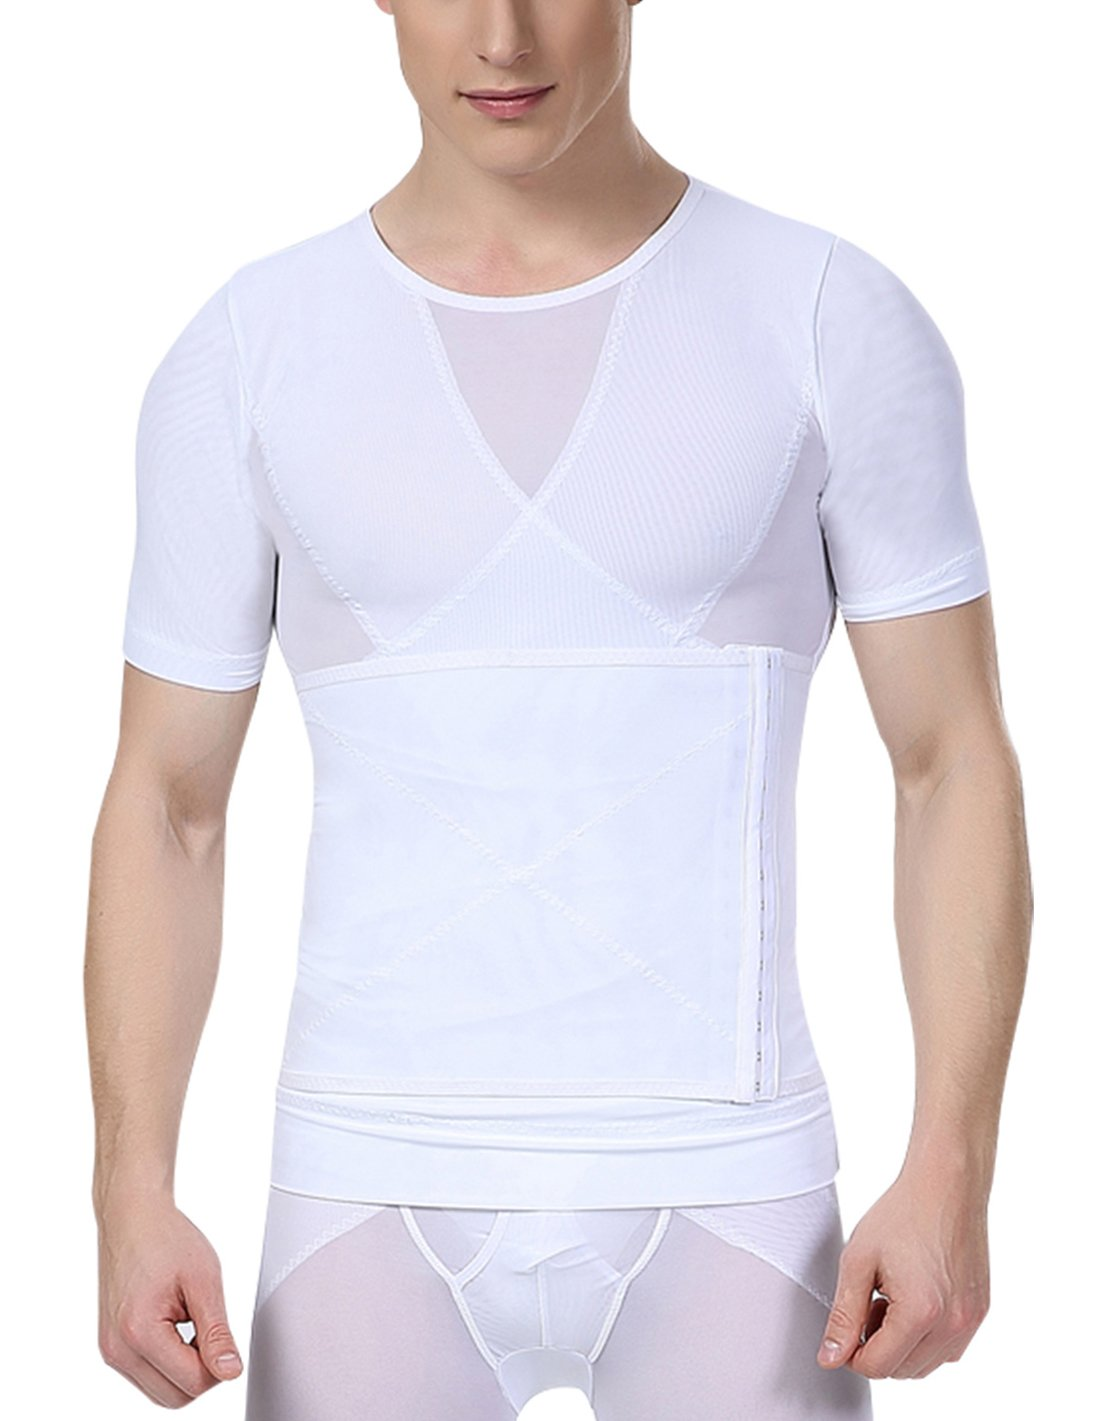 Aieoe Men's Extreme Compression Shirt to Hide Gynecomastia Moobs Chest Body Slimming Undershirt Shapewear Size XL White